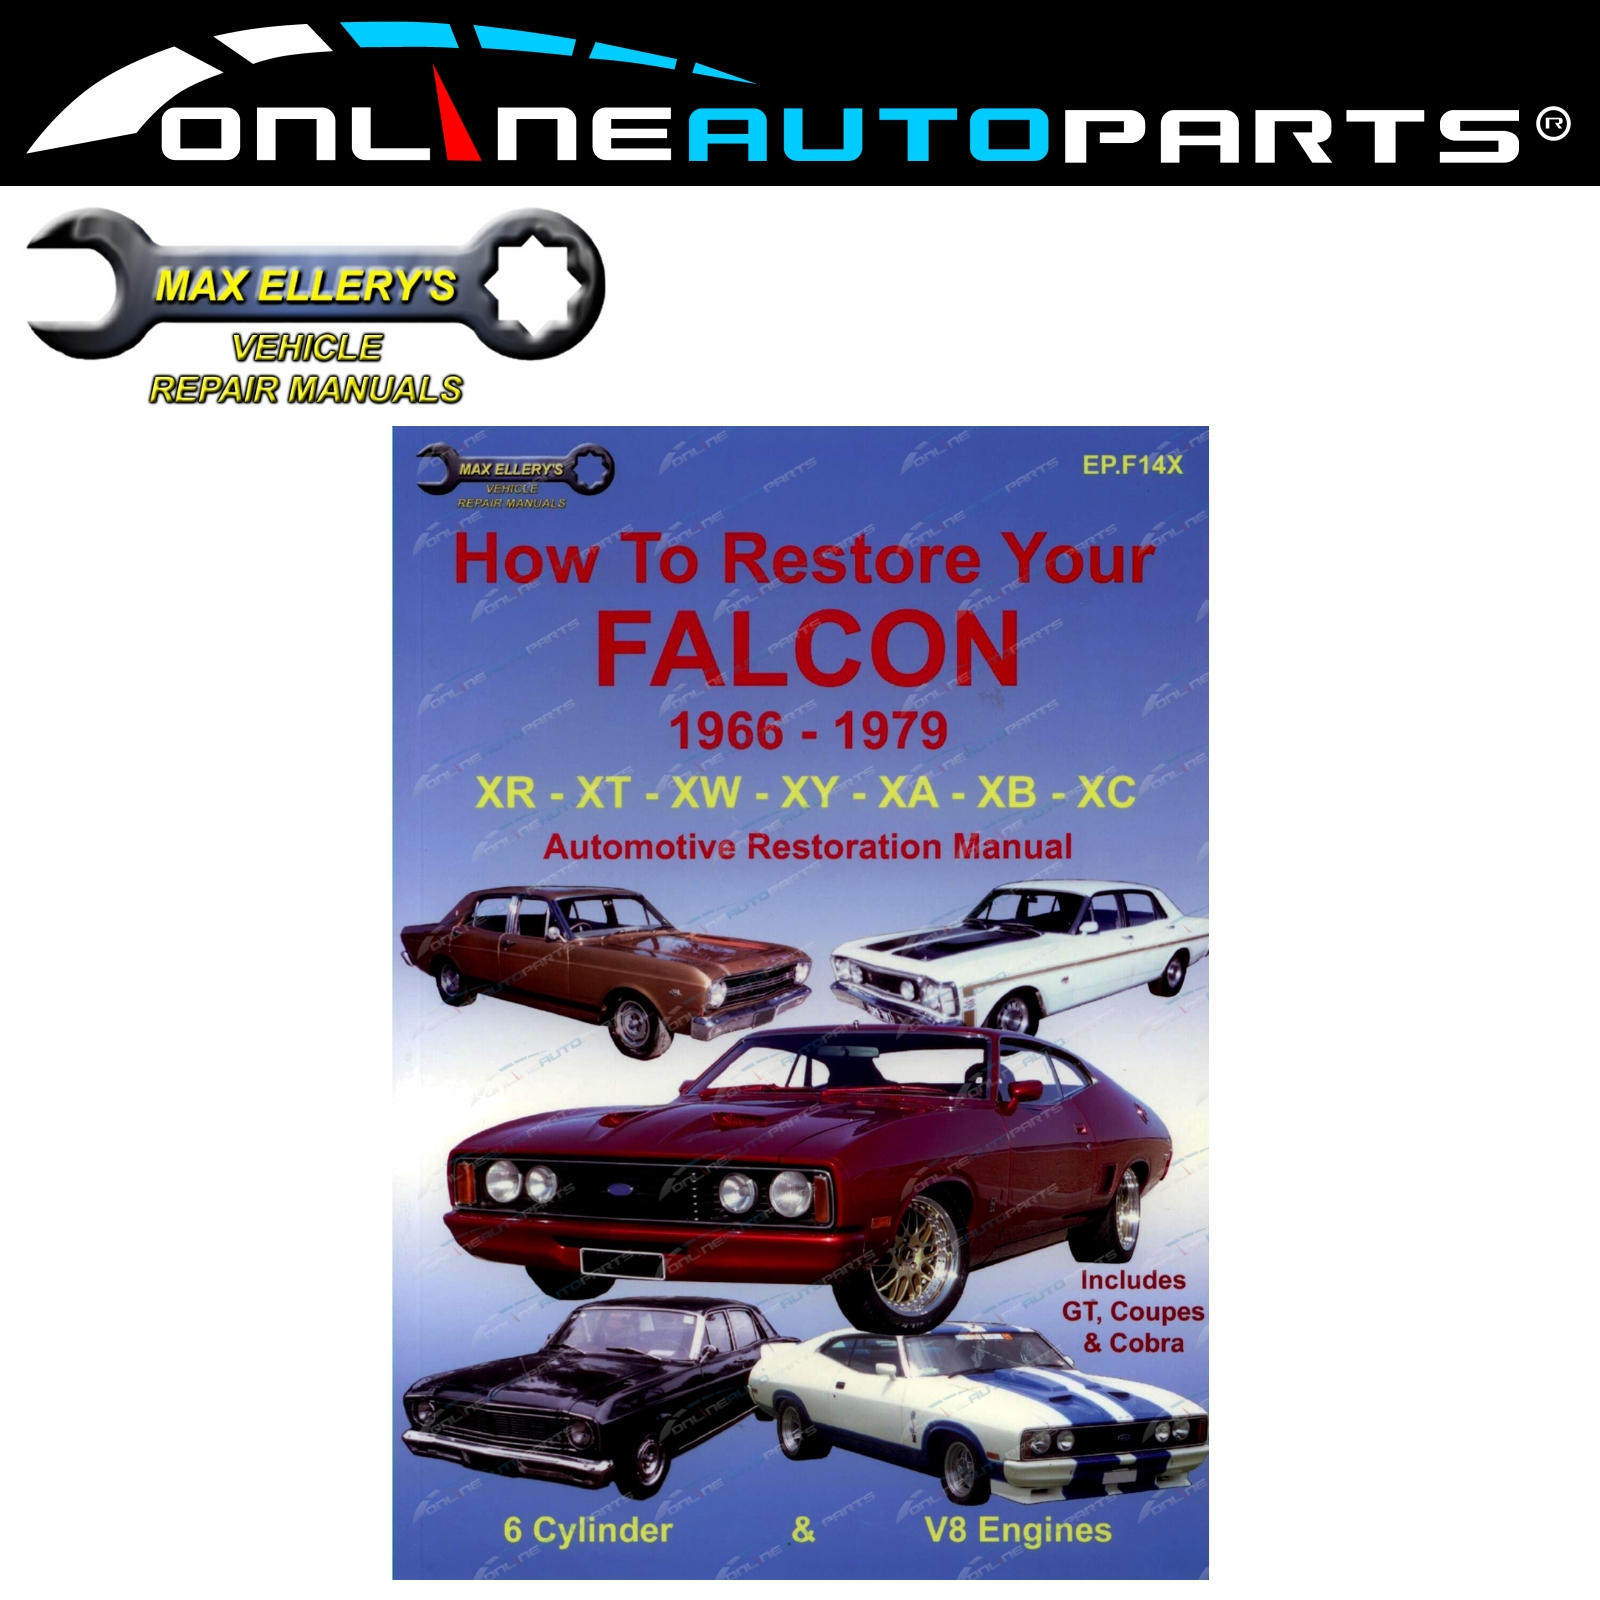 Restoration Manual Book Falcon Xr Xt Xw Xy Xa Xb Xc How To Restore 1978 Fairmont Wiring Diagram Your Ford